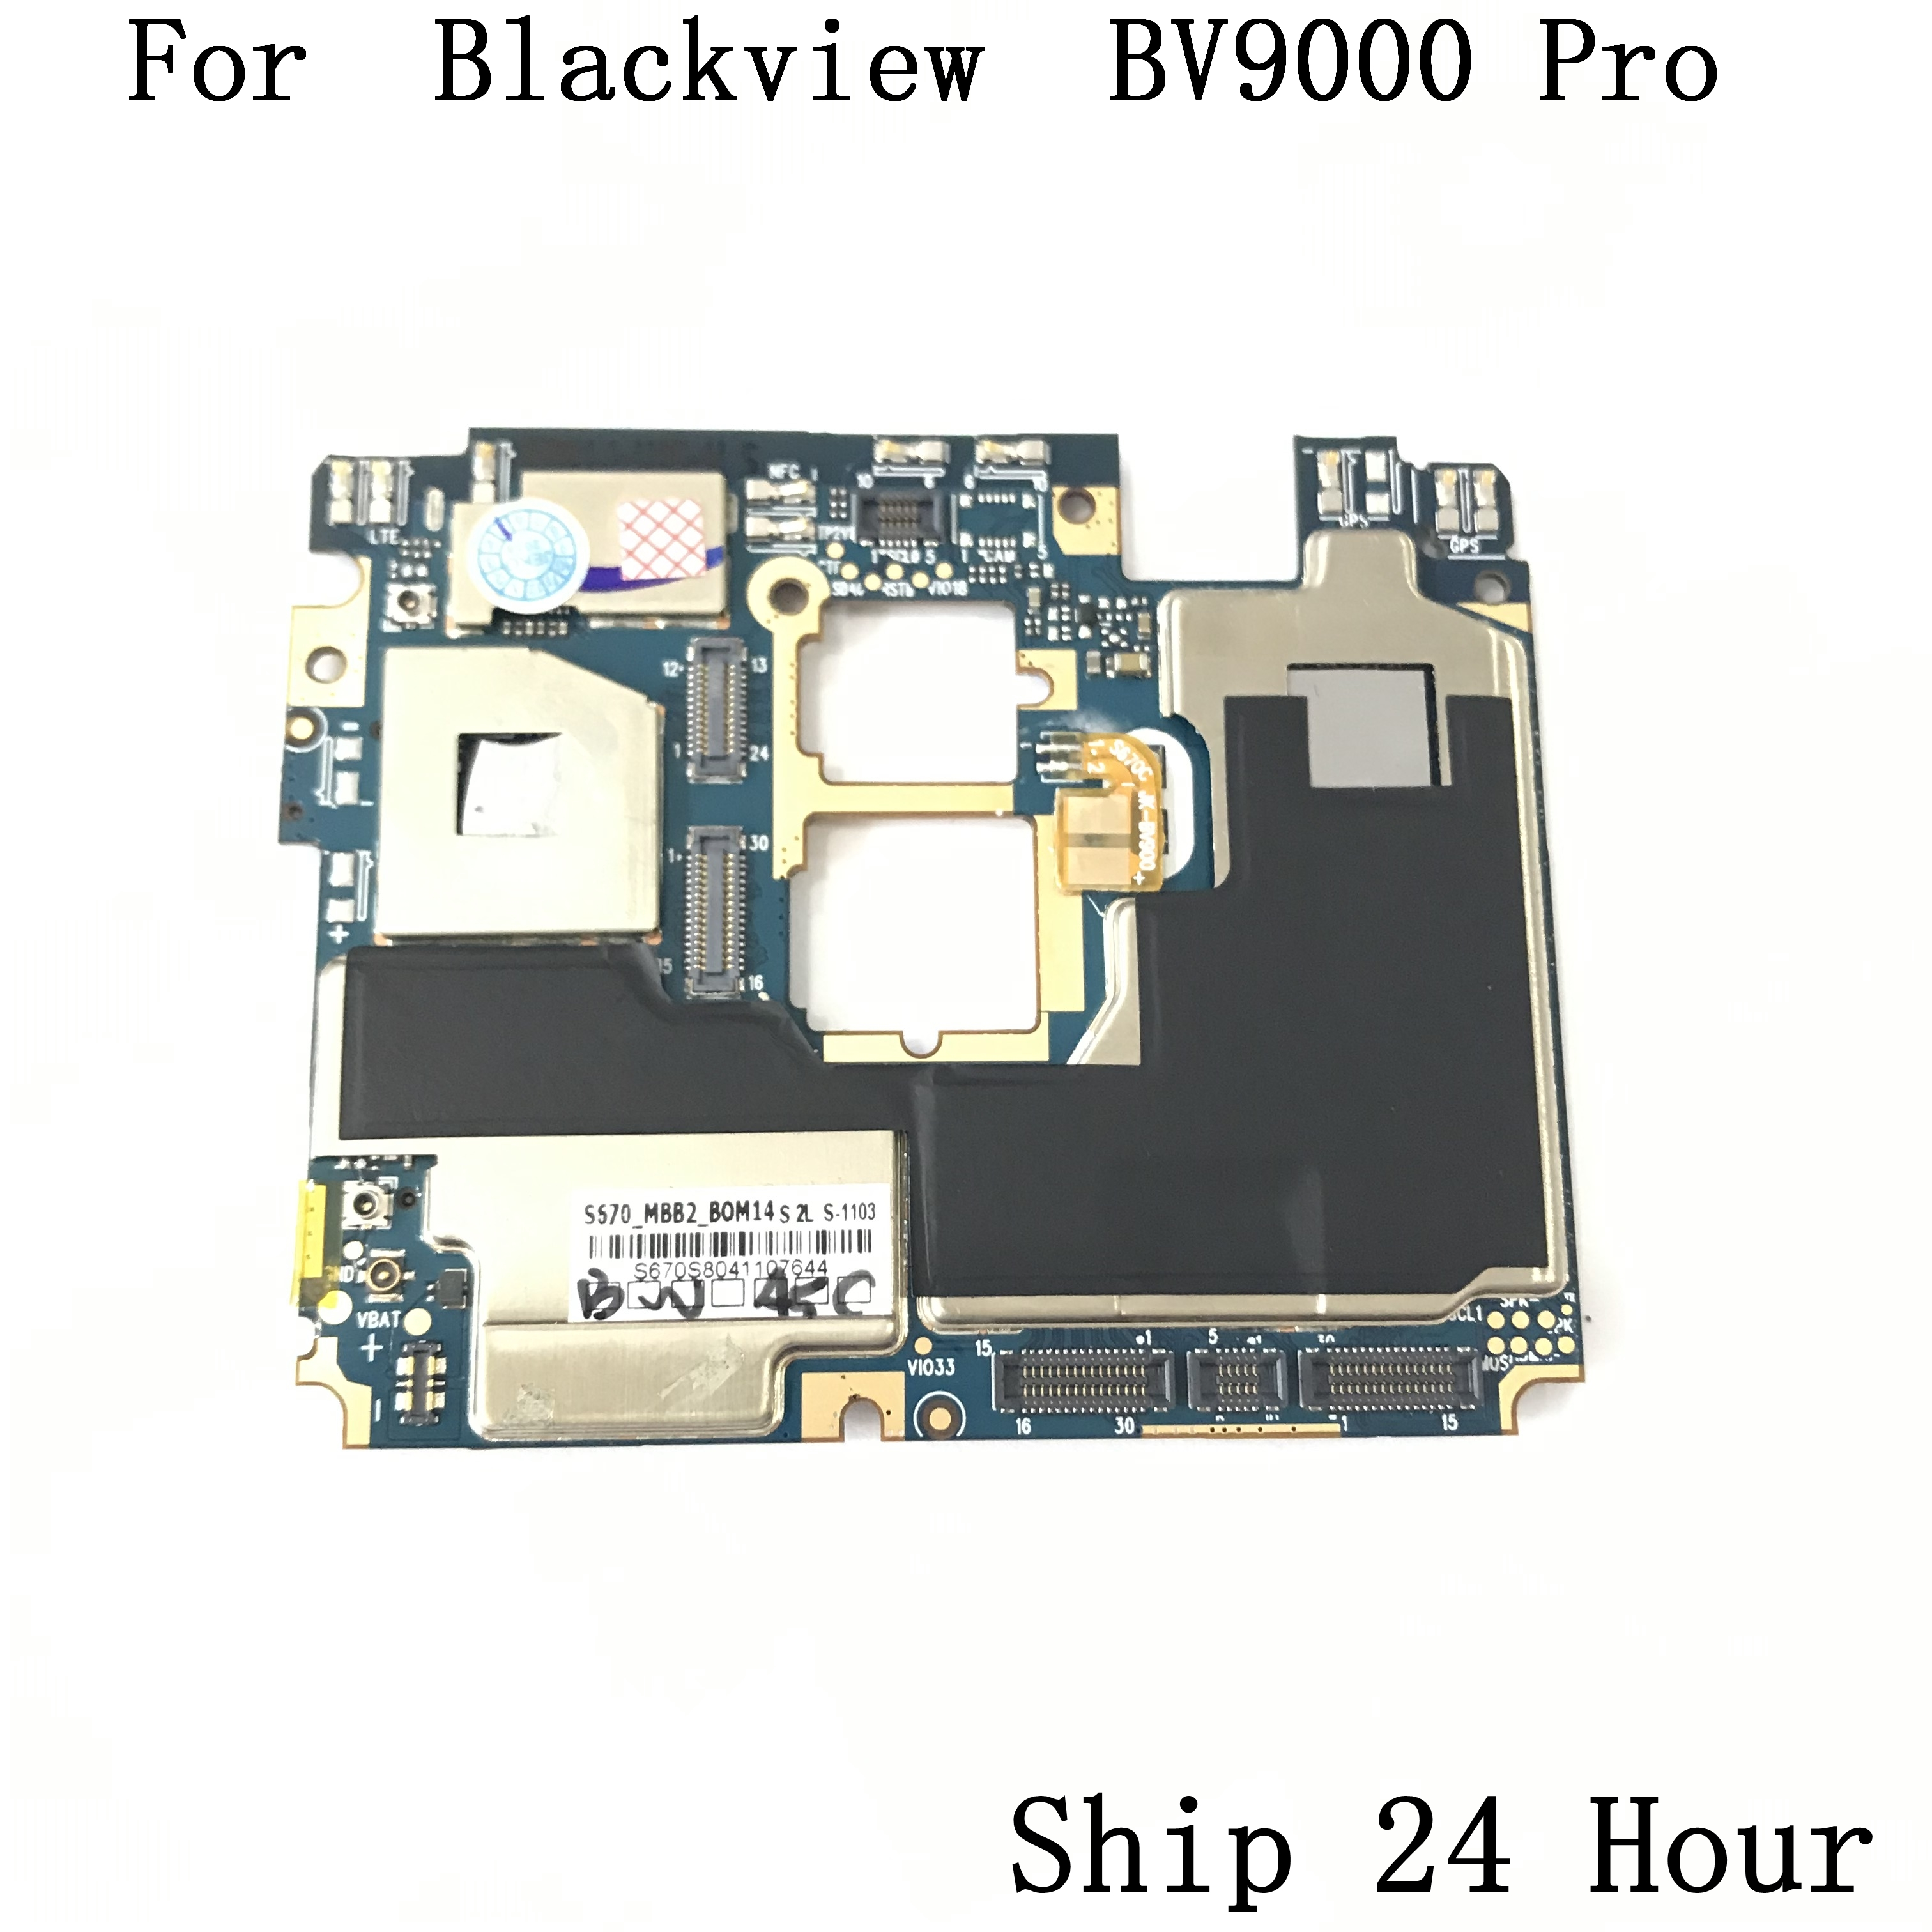 Placa base usada 6G RAM + 128G ROM placa base para Blackview BV9000 Pro MTK6757 Octa Core 5,7